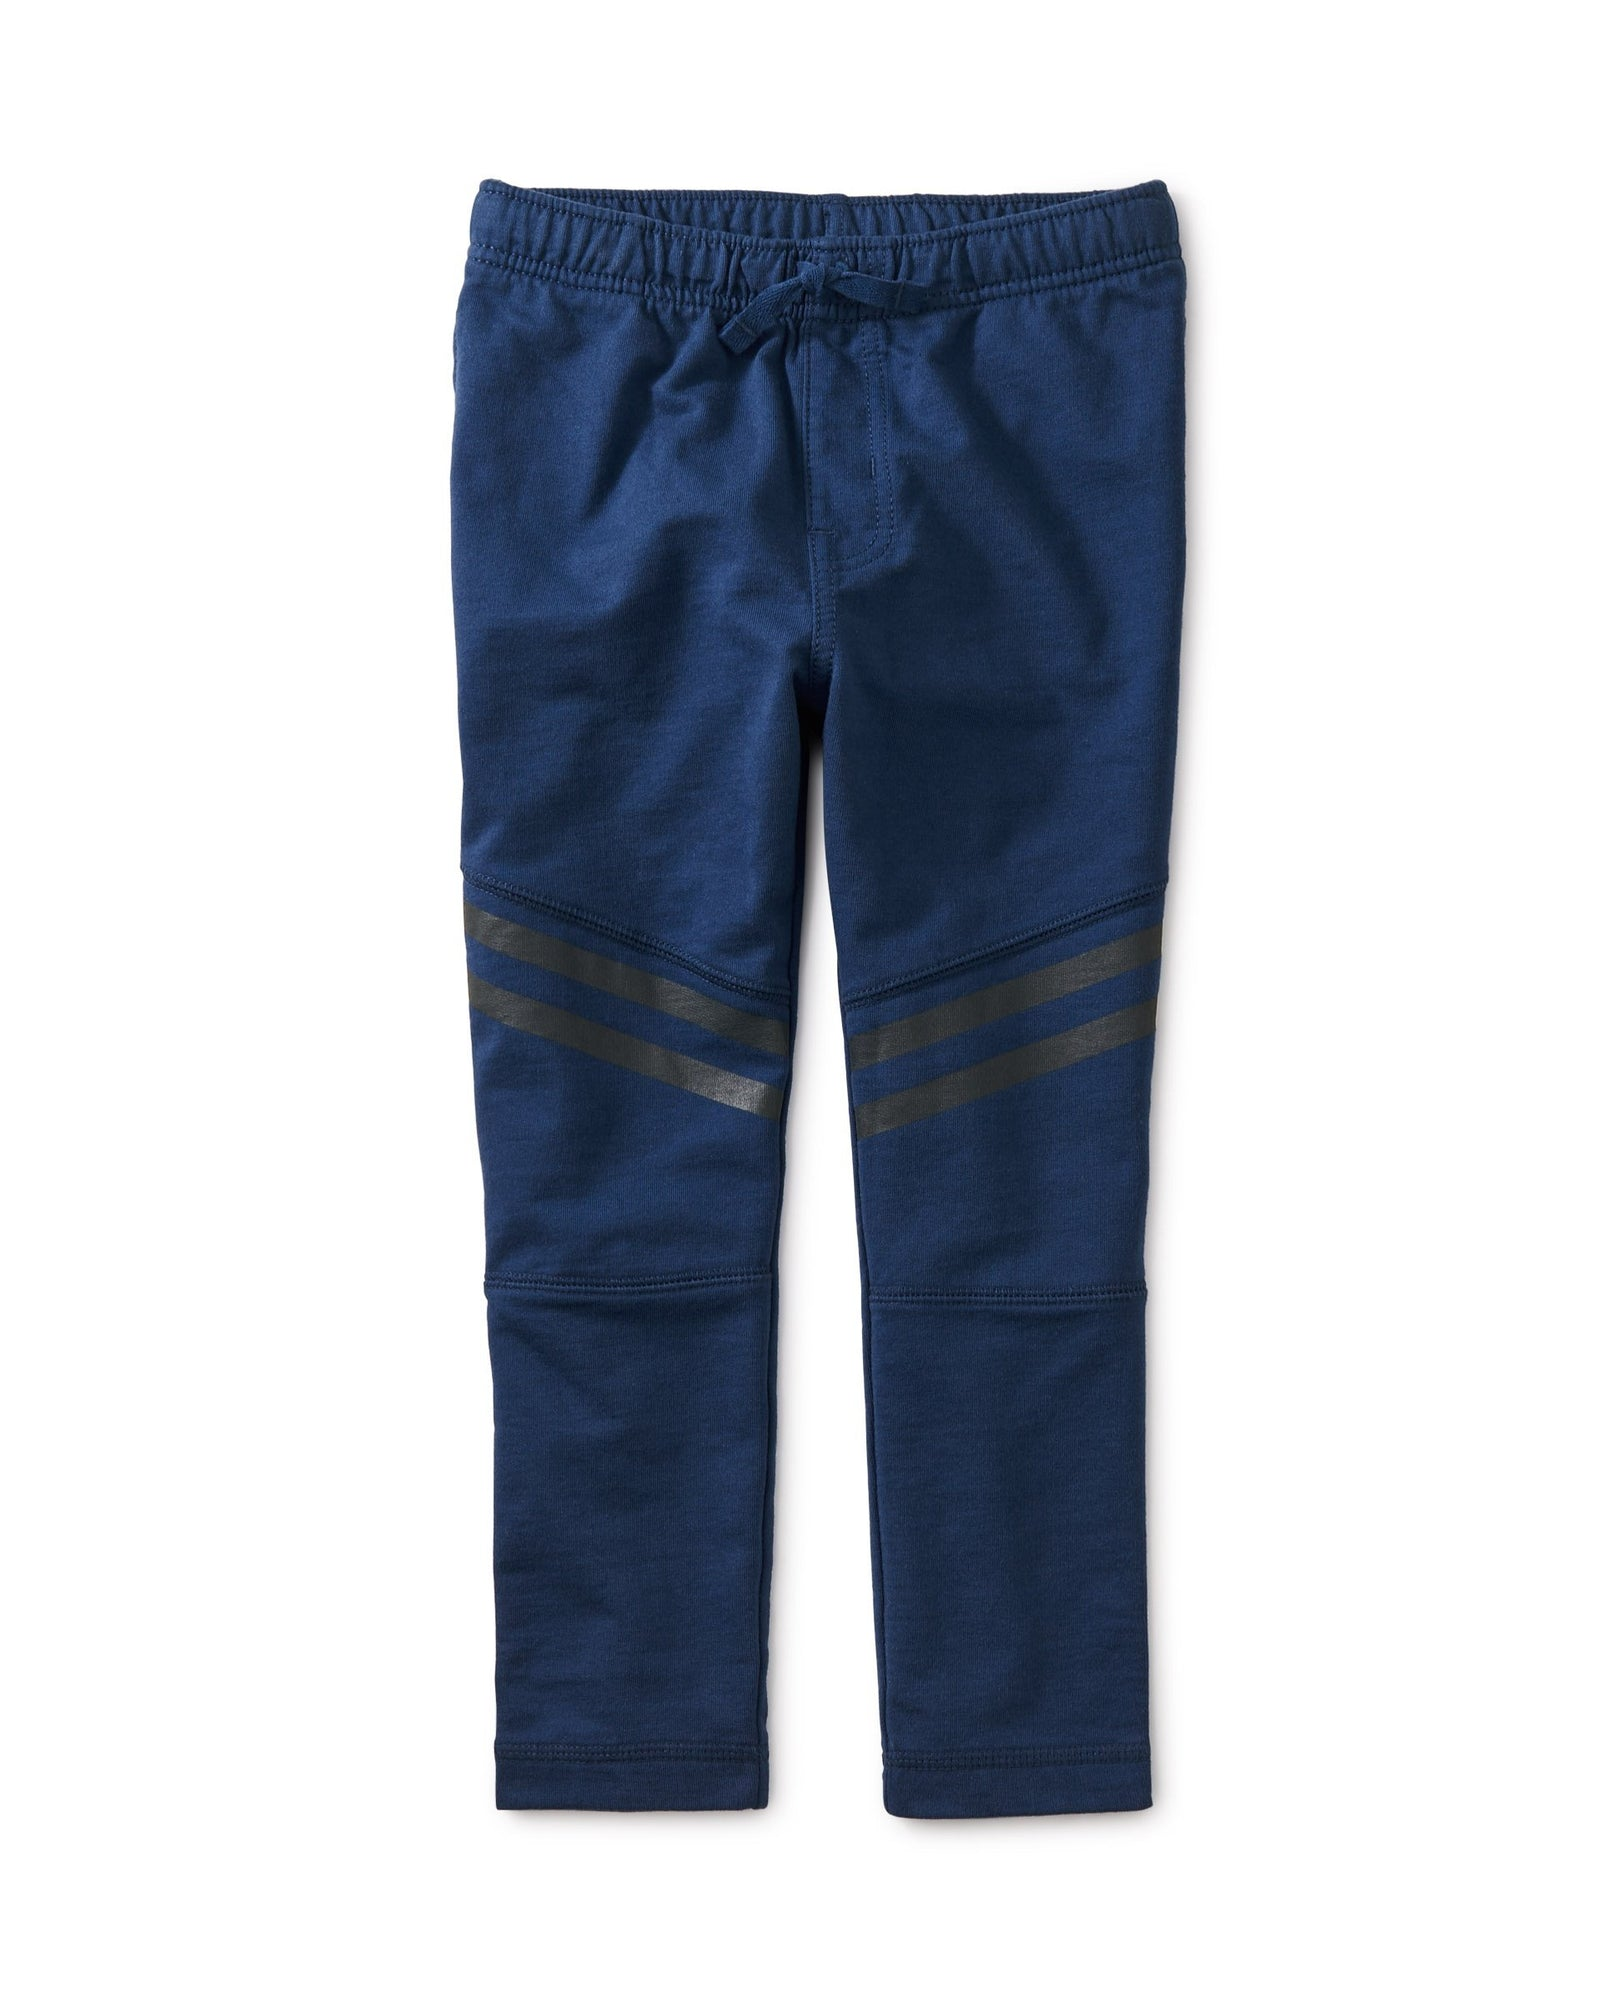 Little tea collection boy Speedy Striped Play Pant in Nightfall